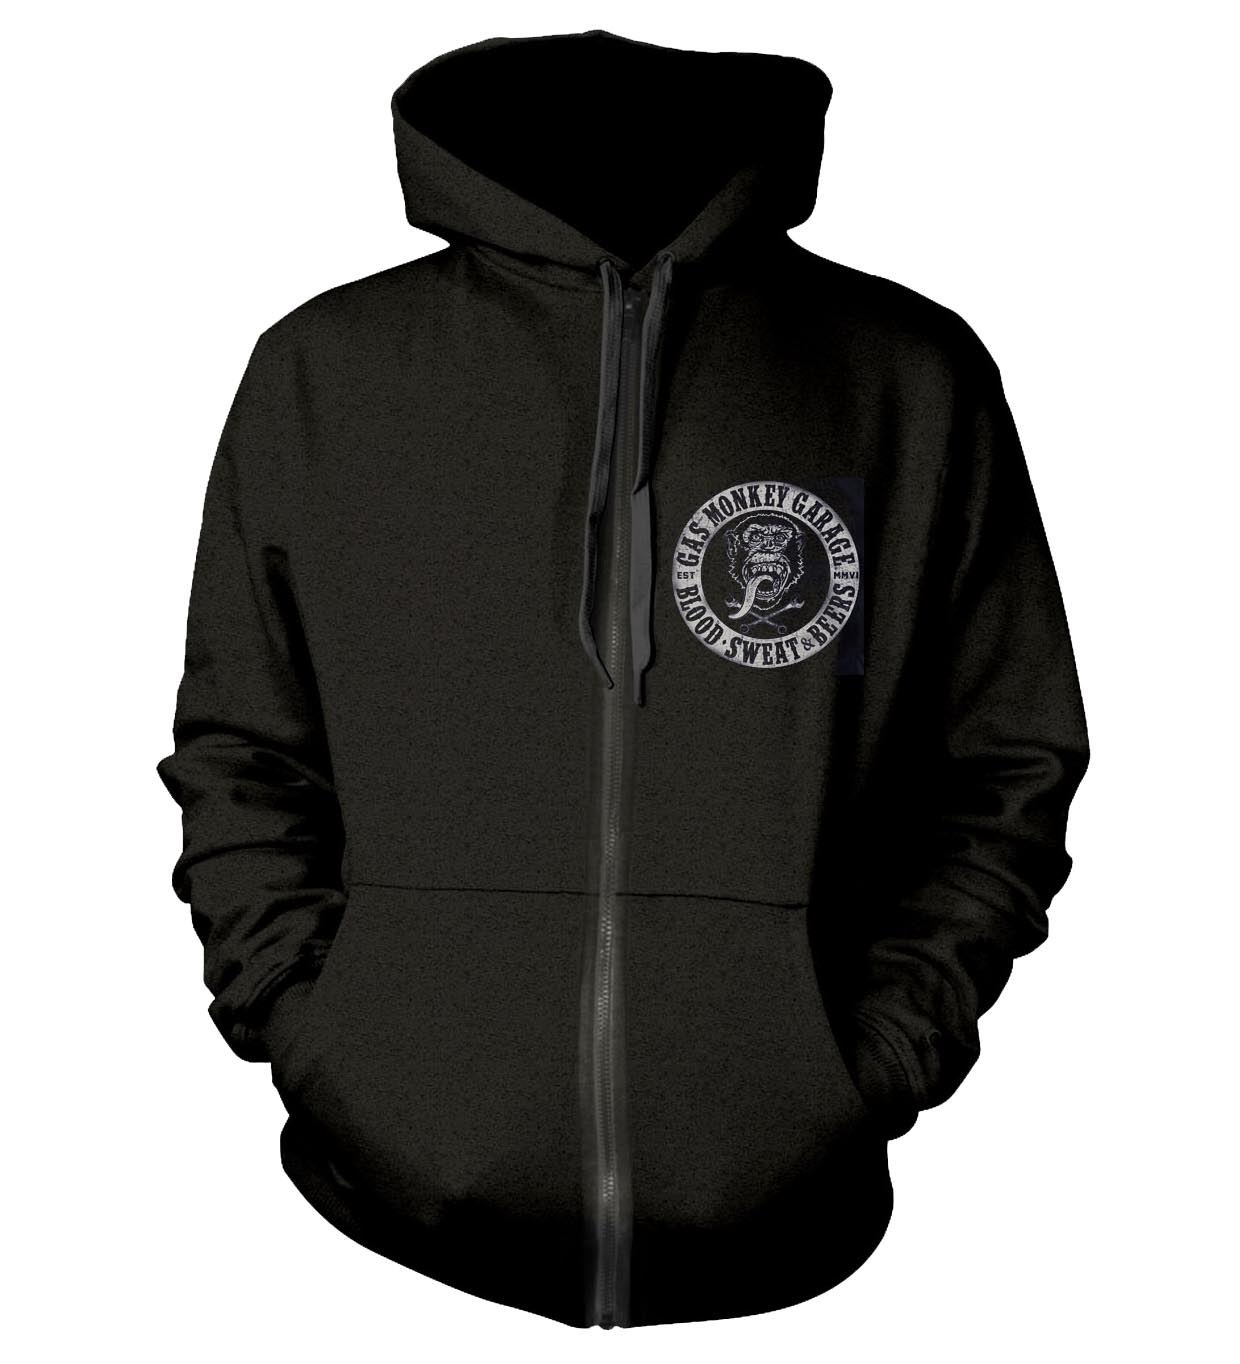 Official-PH-GAS-MONKEY-GARAGE-Hoody-Hoodie-Distressed-LOGO-Zip-All-Sizes thumbnail 7